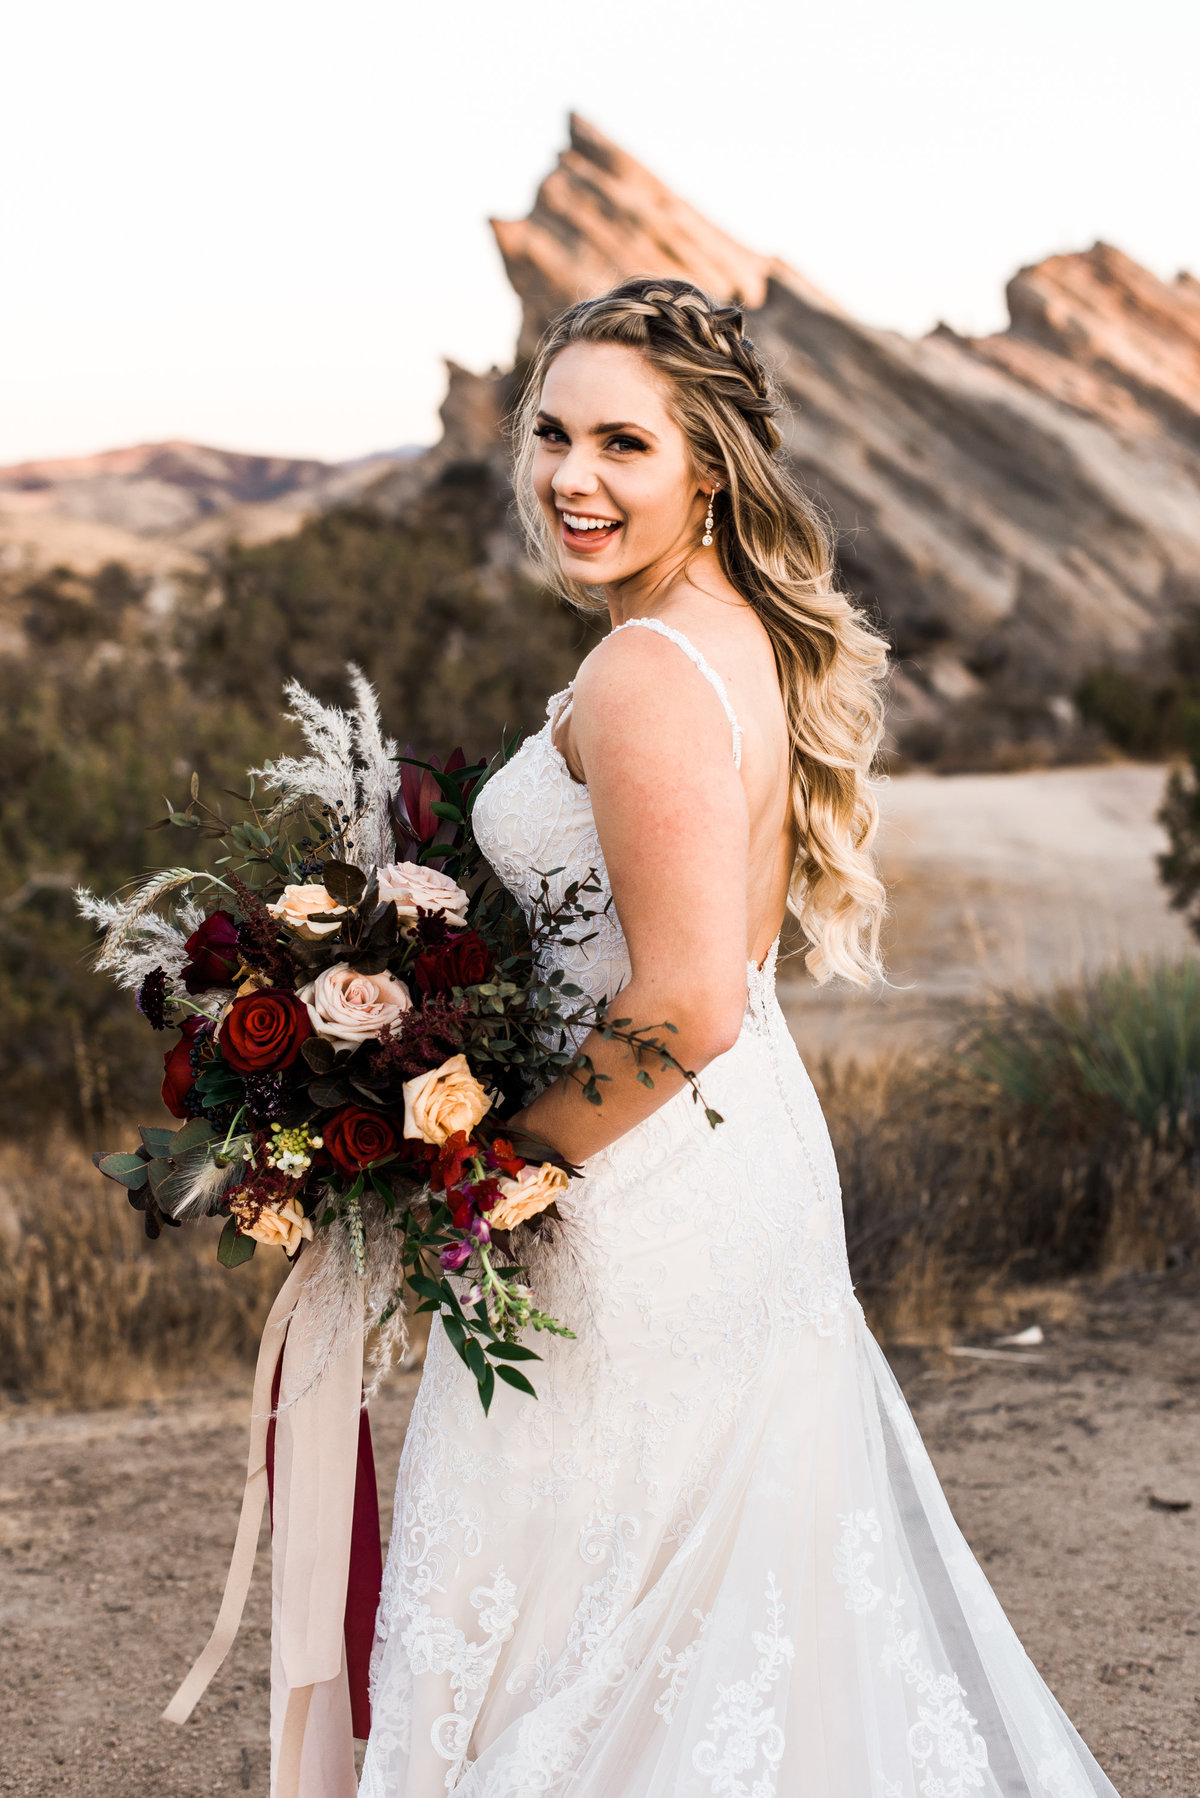 wedding photos in the desert photo